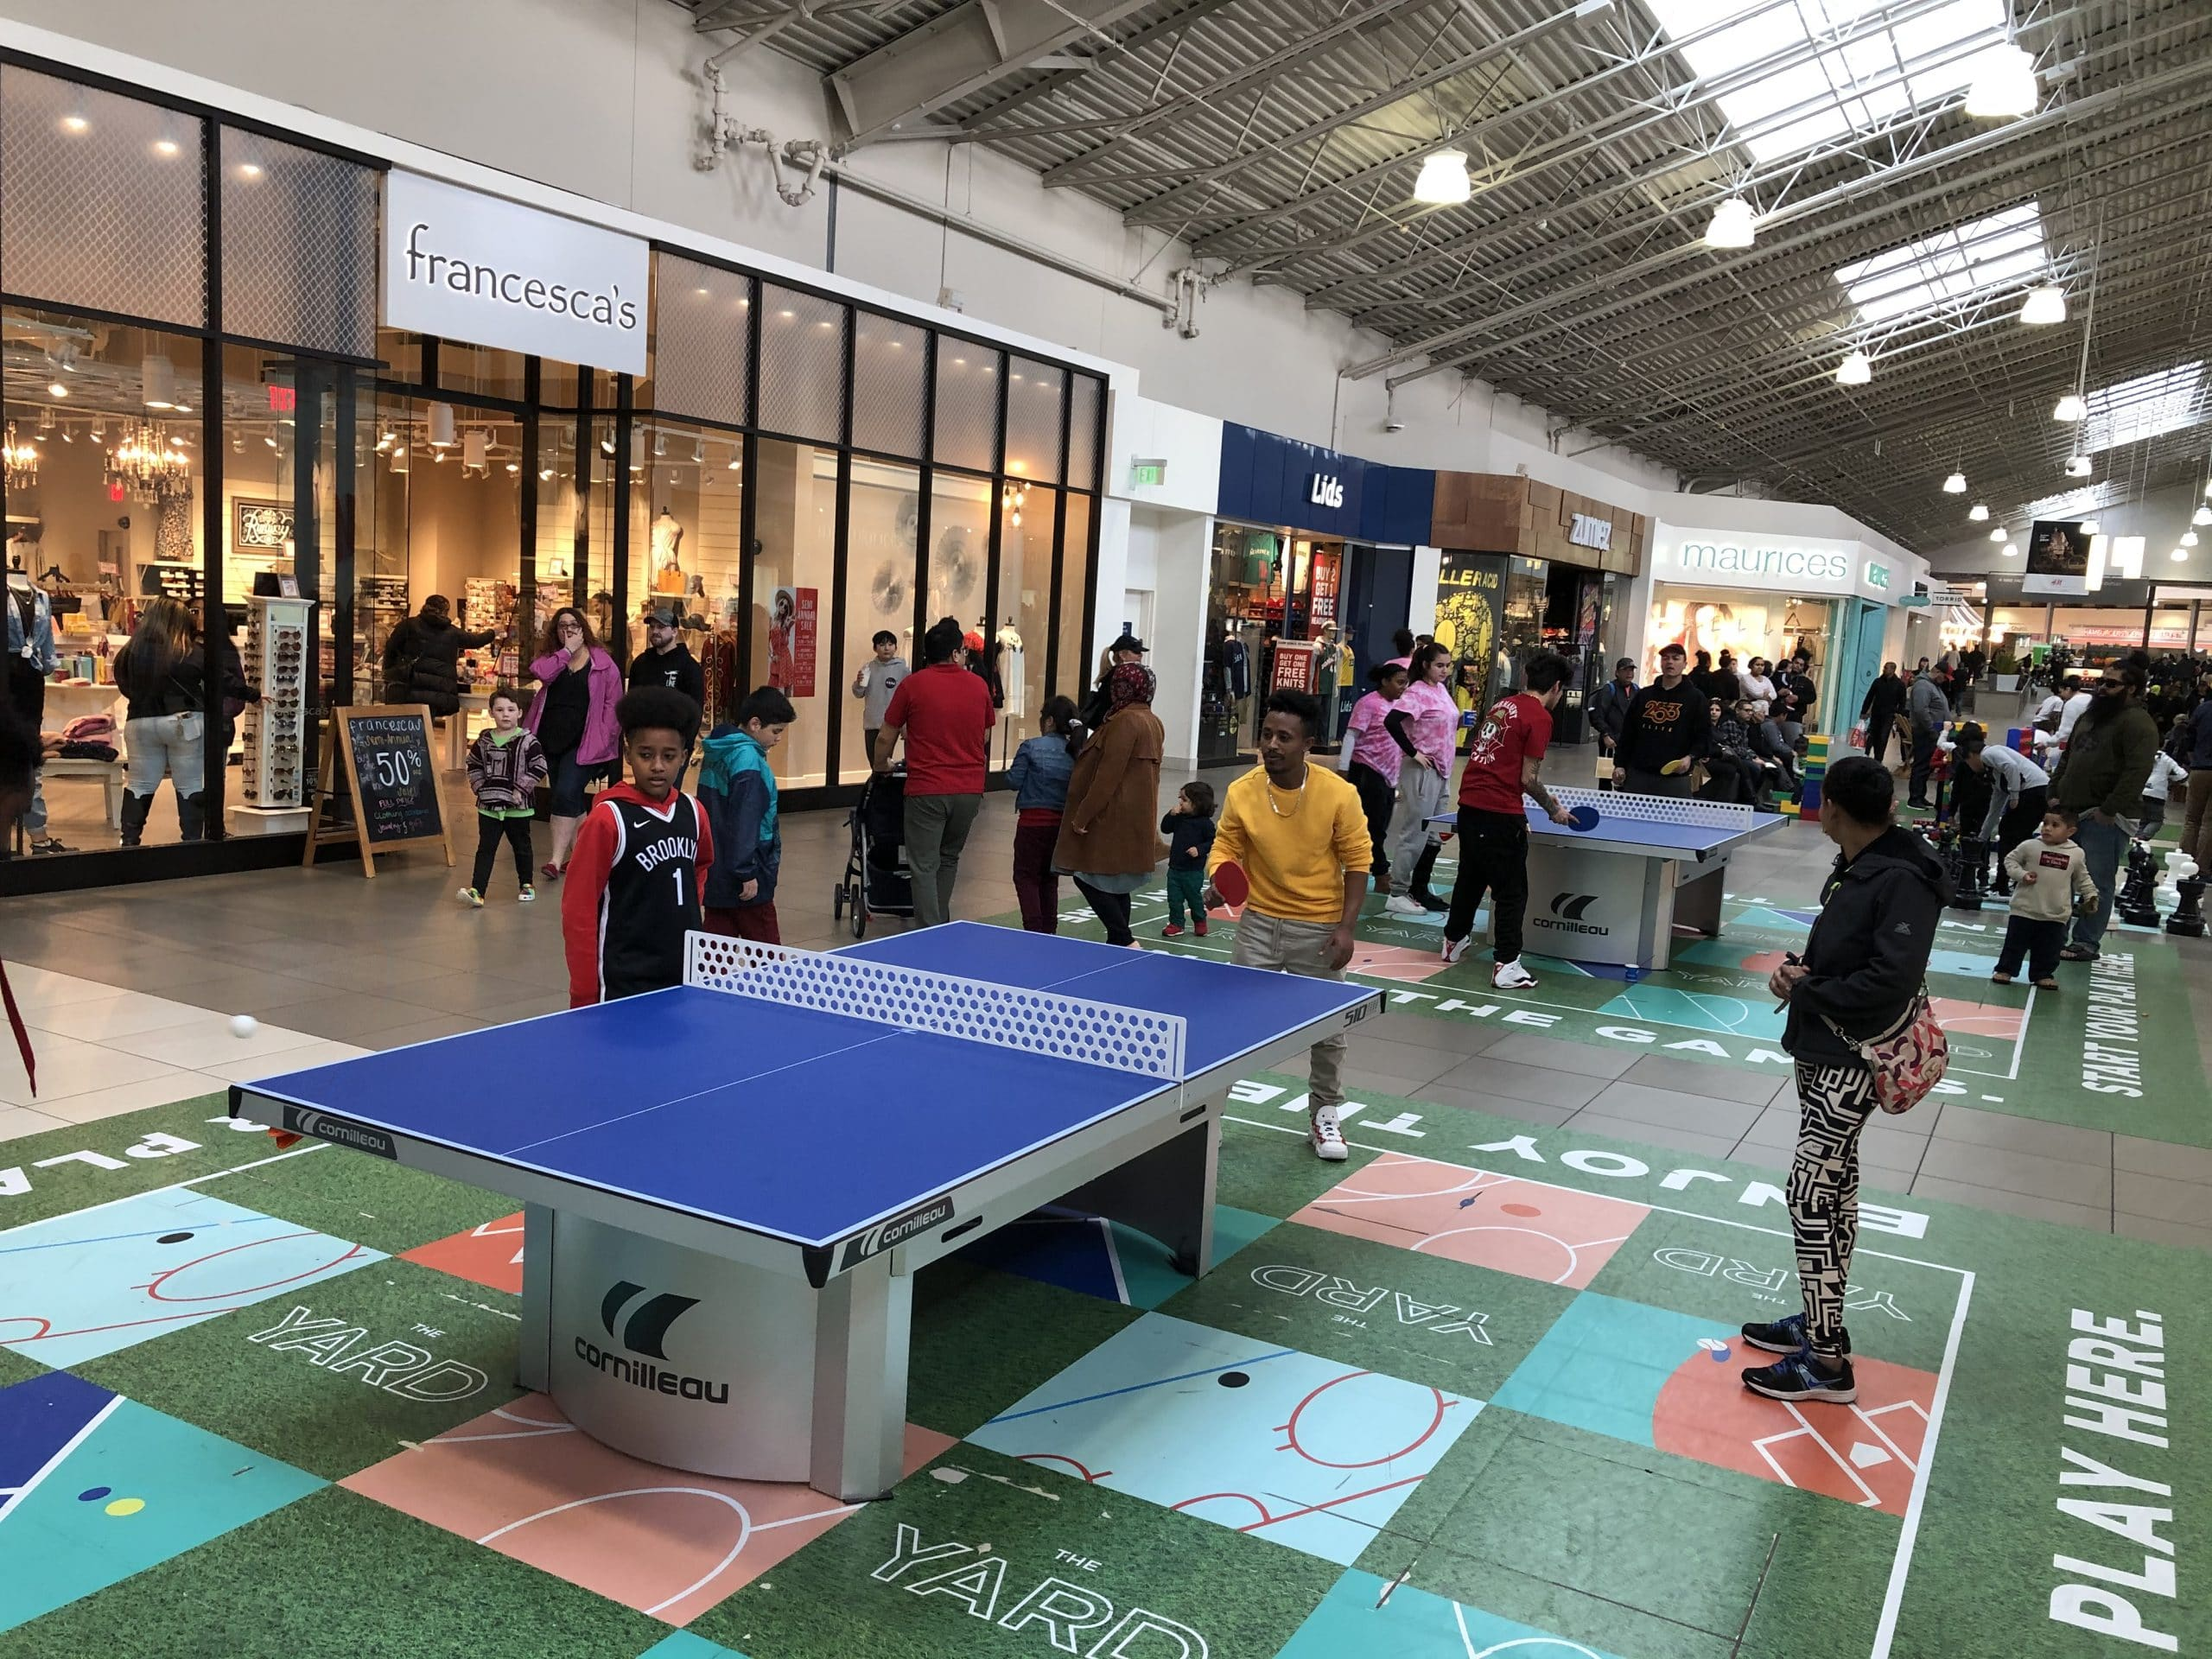 cornilleau 510 stationary ping pong table outlet mall seattle washington